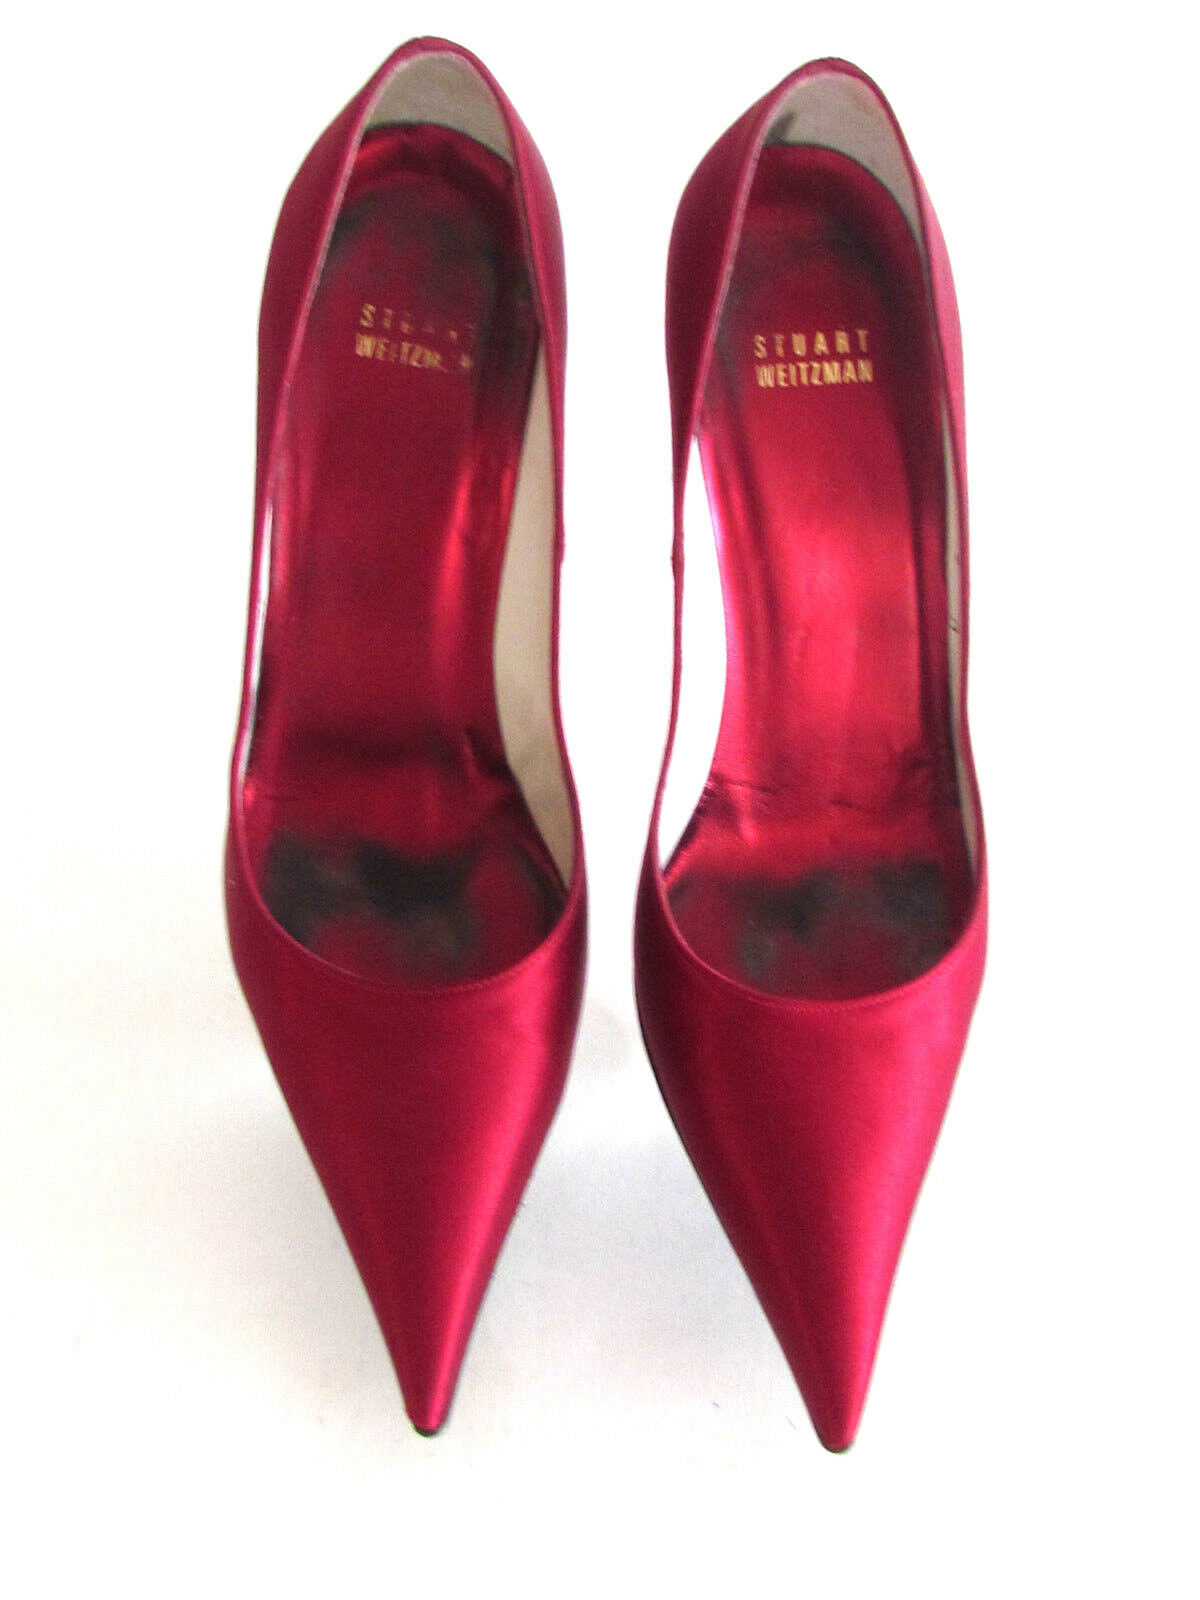 Women's shoes Evening shoes Designer shoes Ruby Red Satin Satin Satin Swarovsky Crystal 9.M d1b656